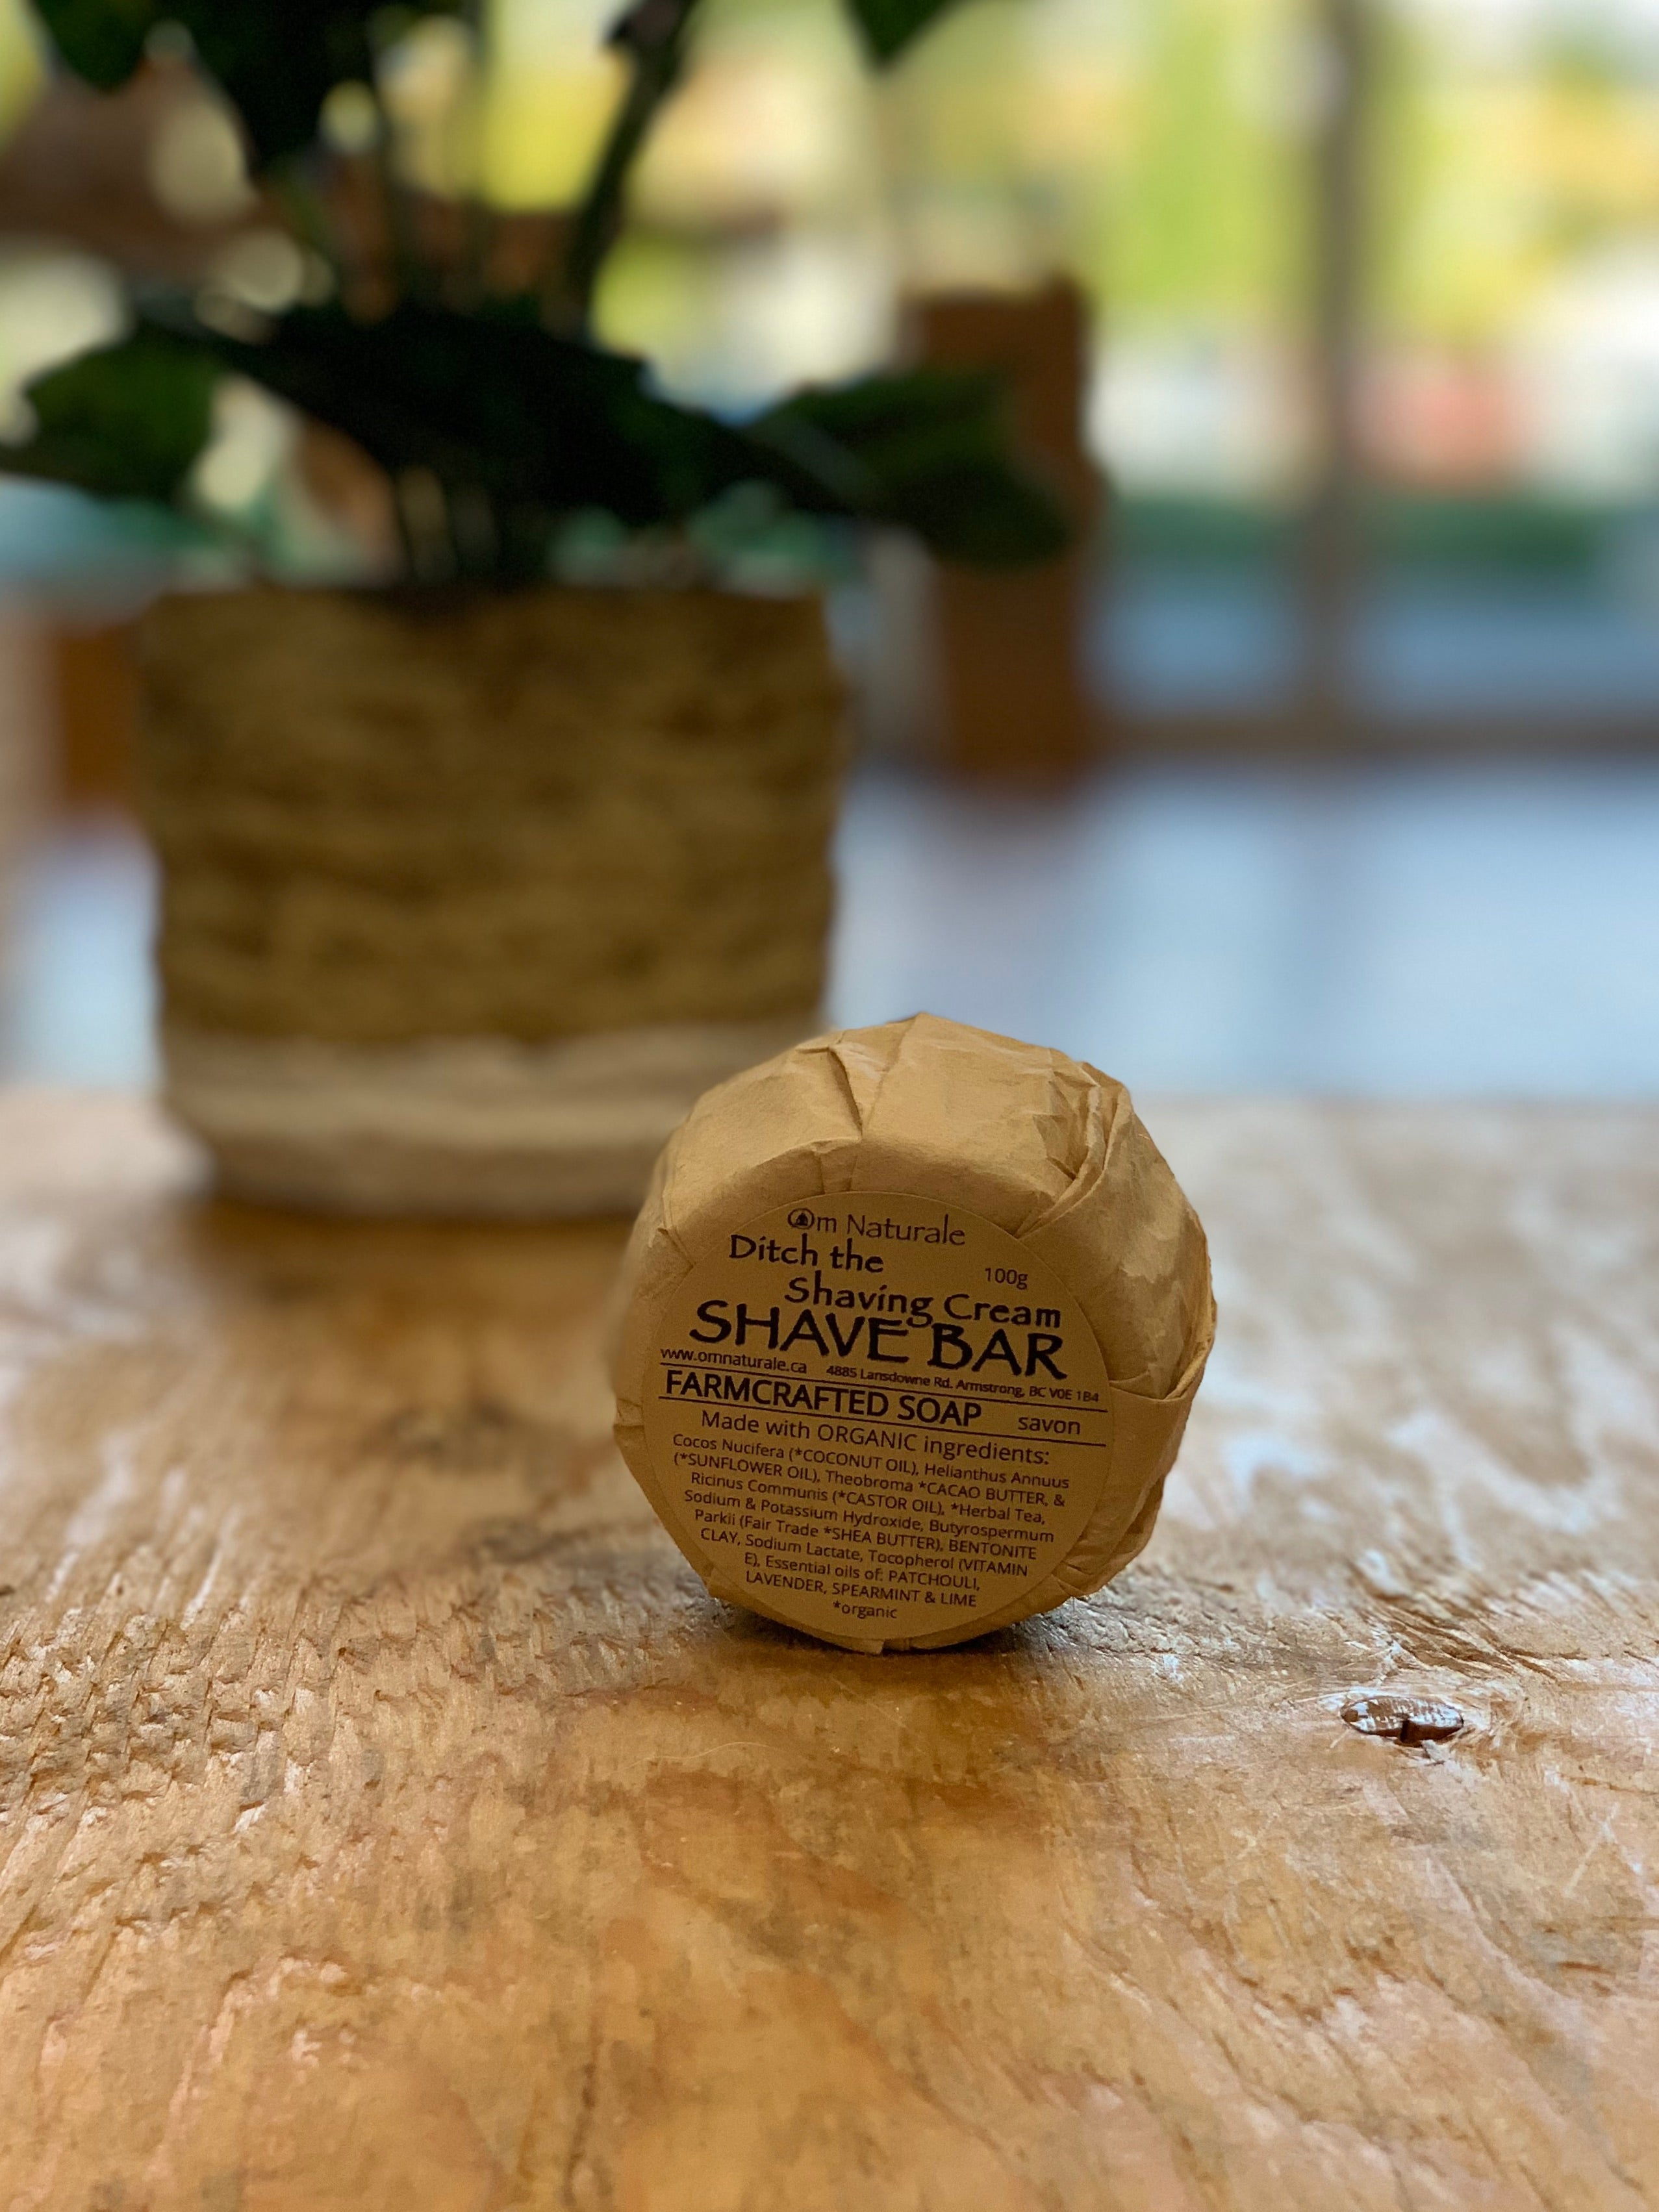 Om Naturale - Ditch the Shaving Cream Shave Bar